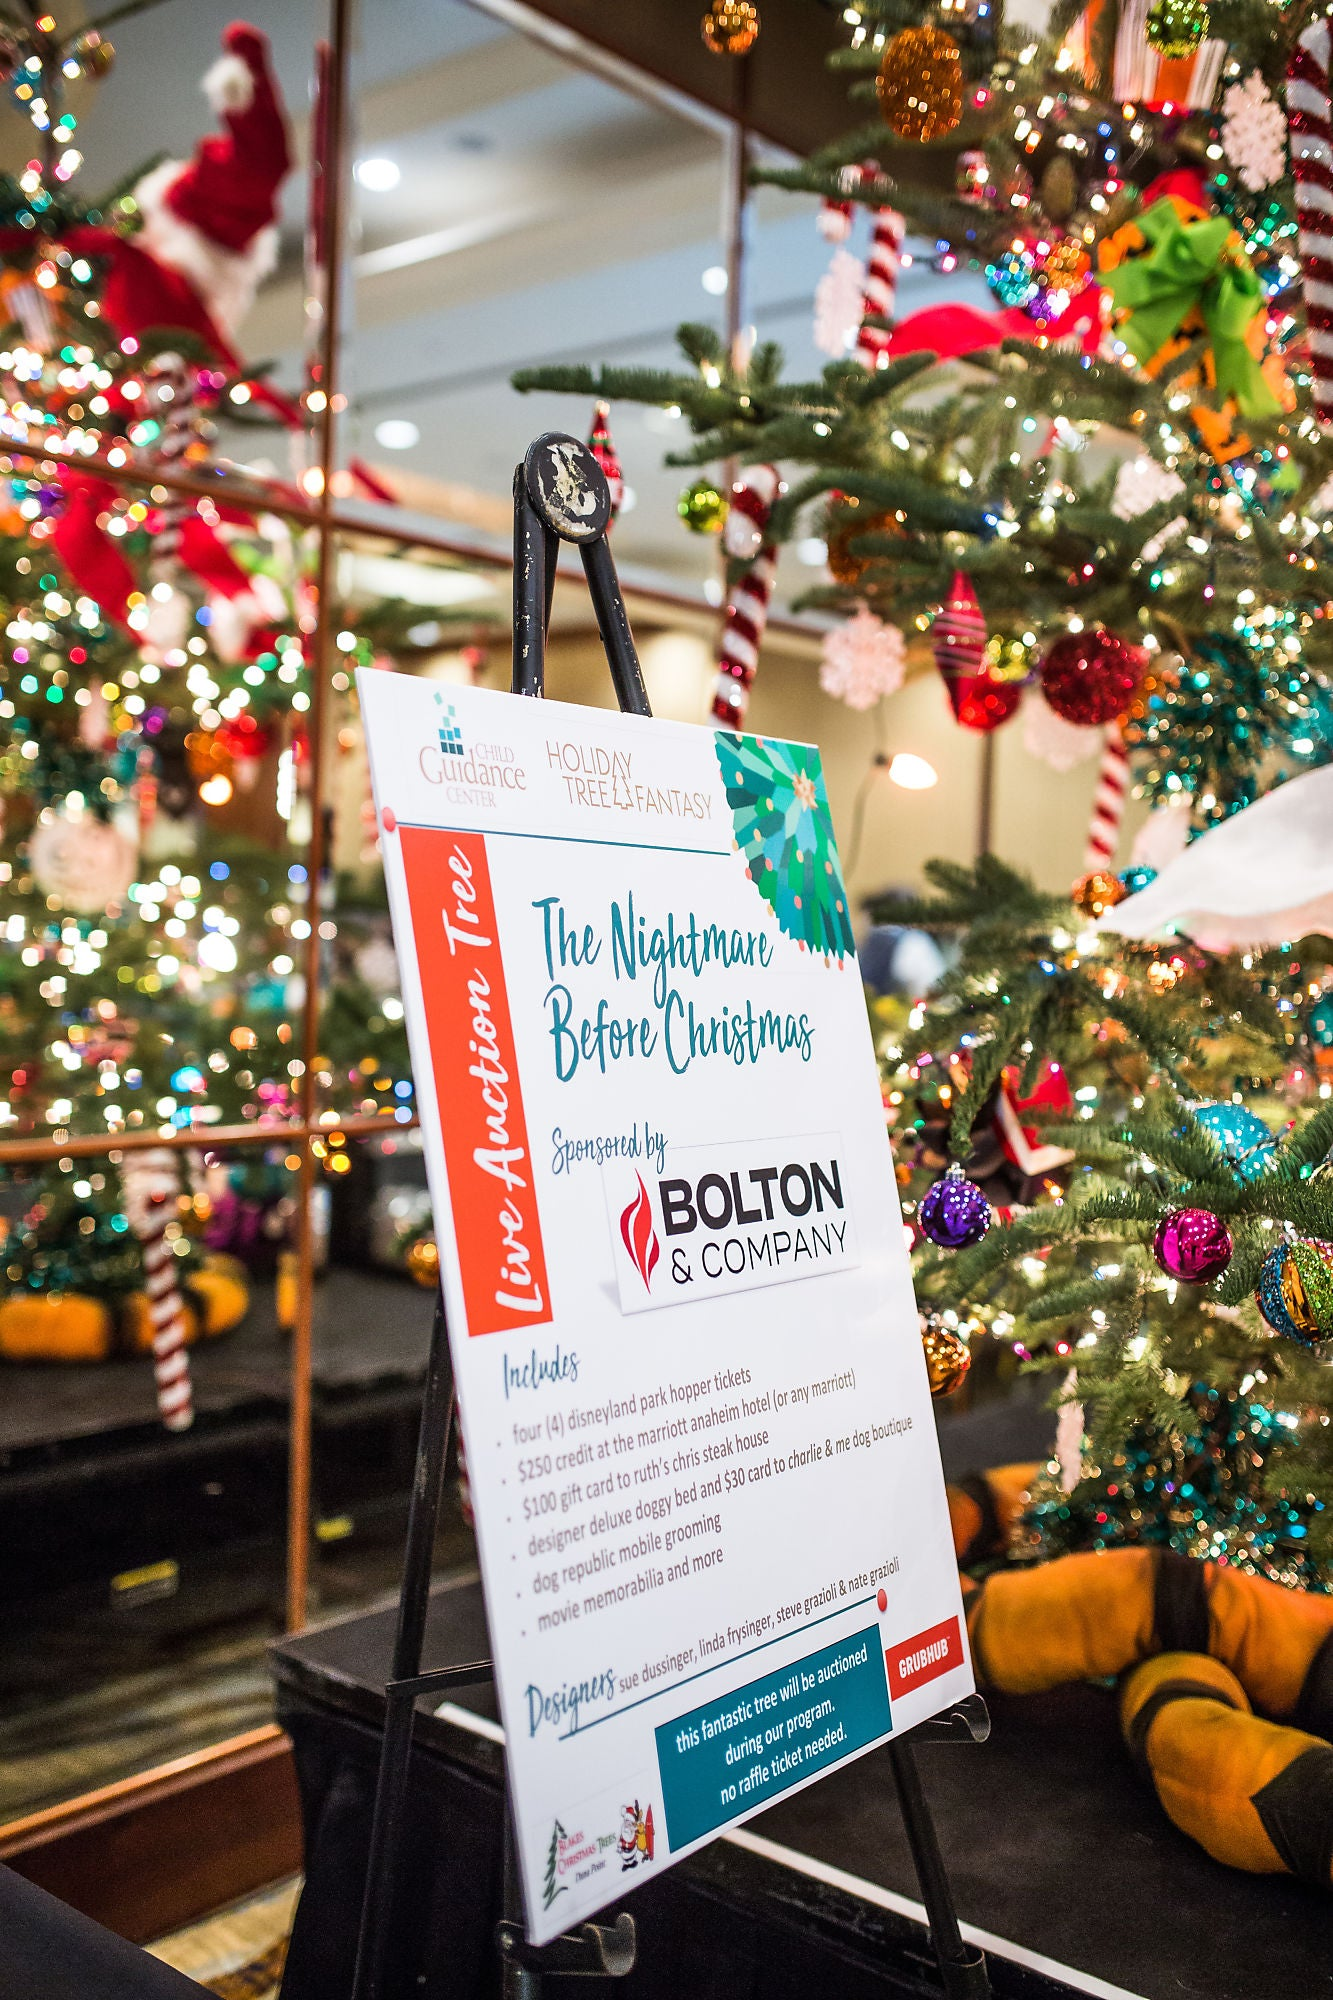 An information board explaining an auction item, placed next to Christmas trees